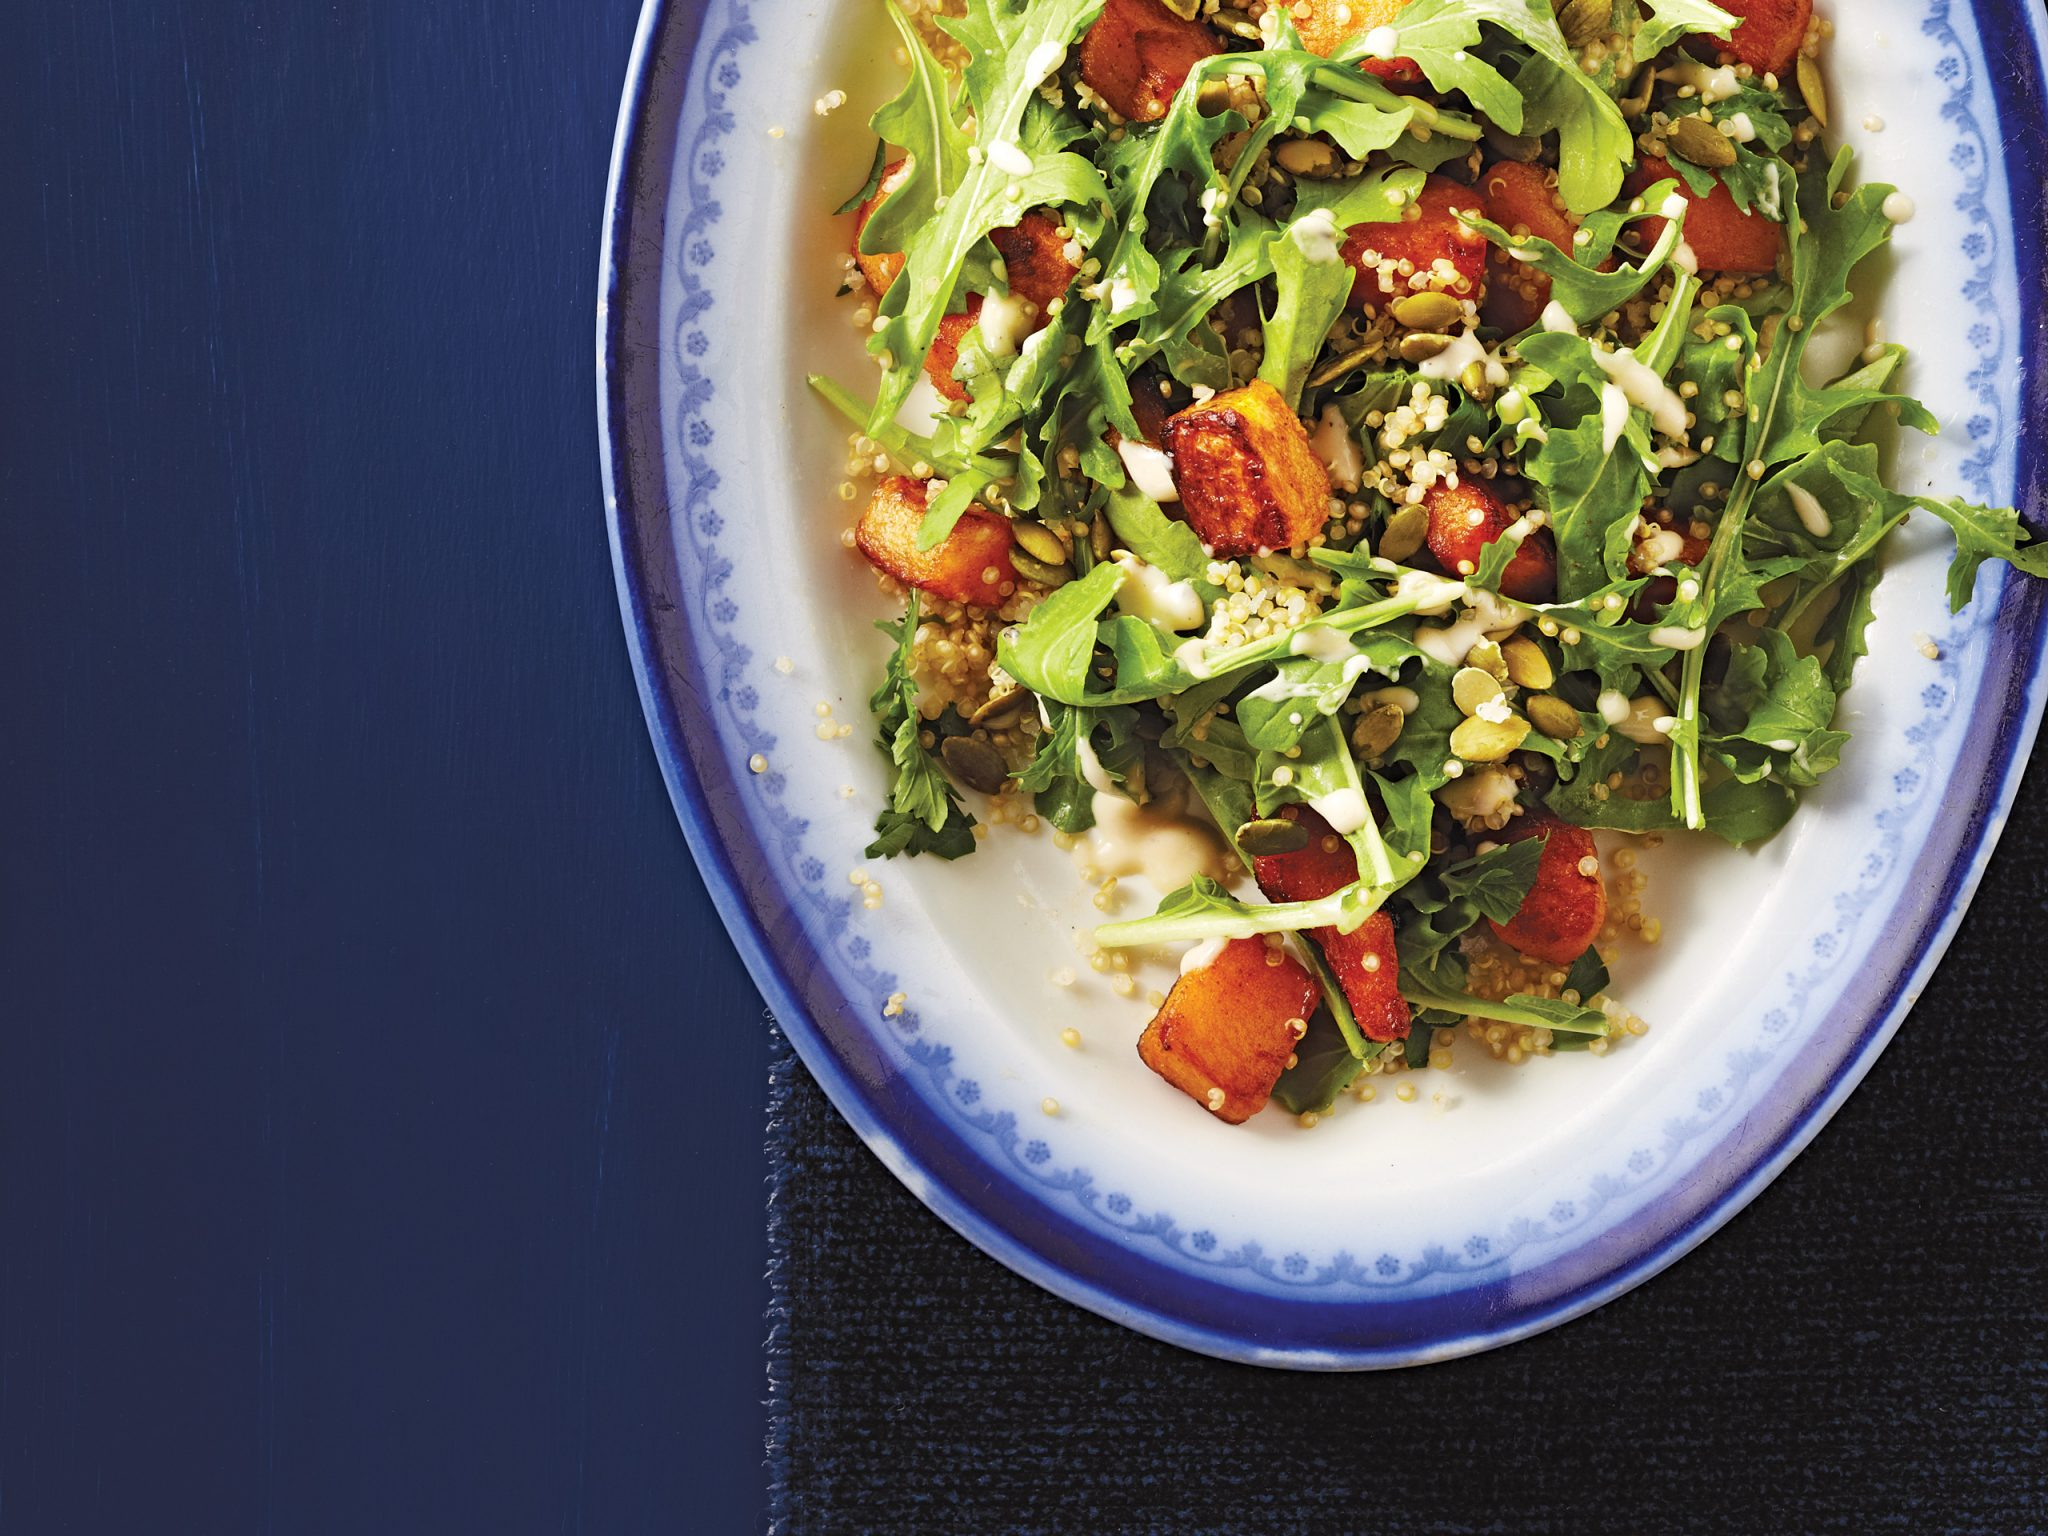 plate of arugula salad with squash, quinoa and seeds